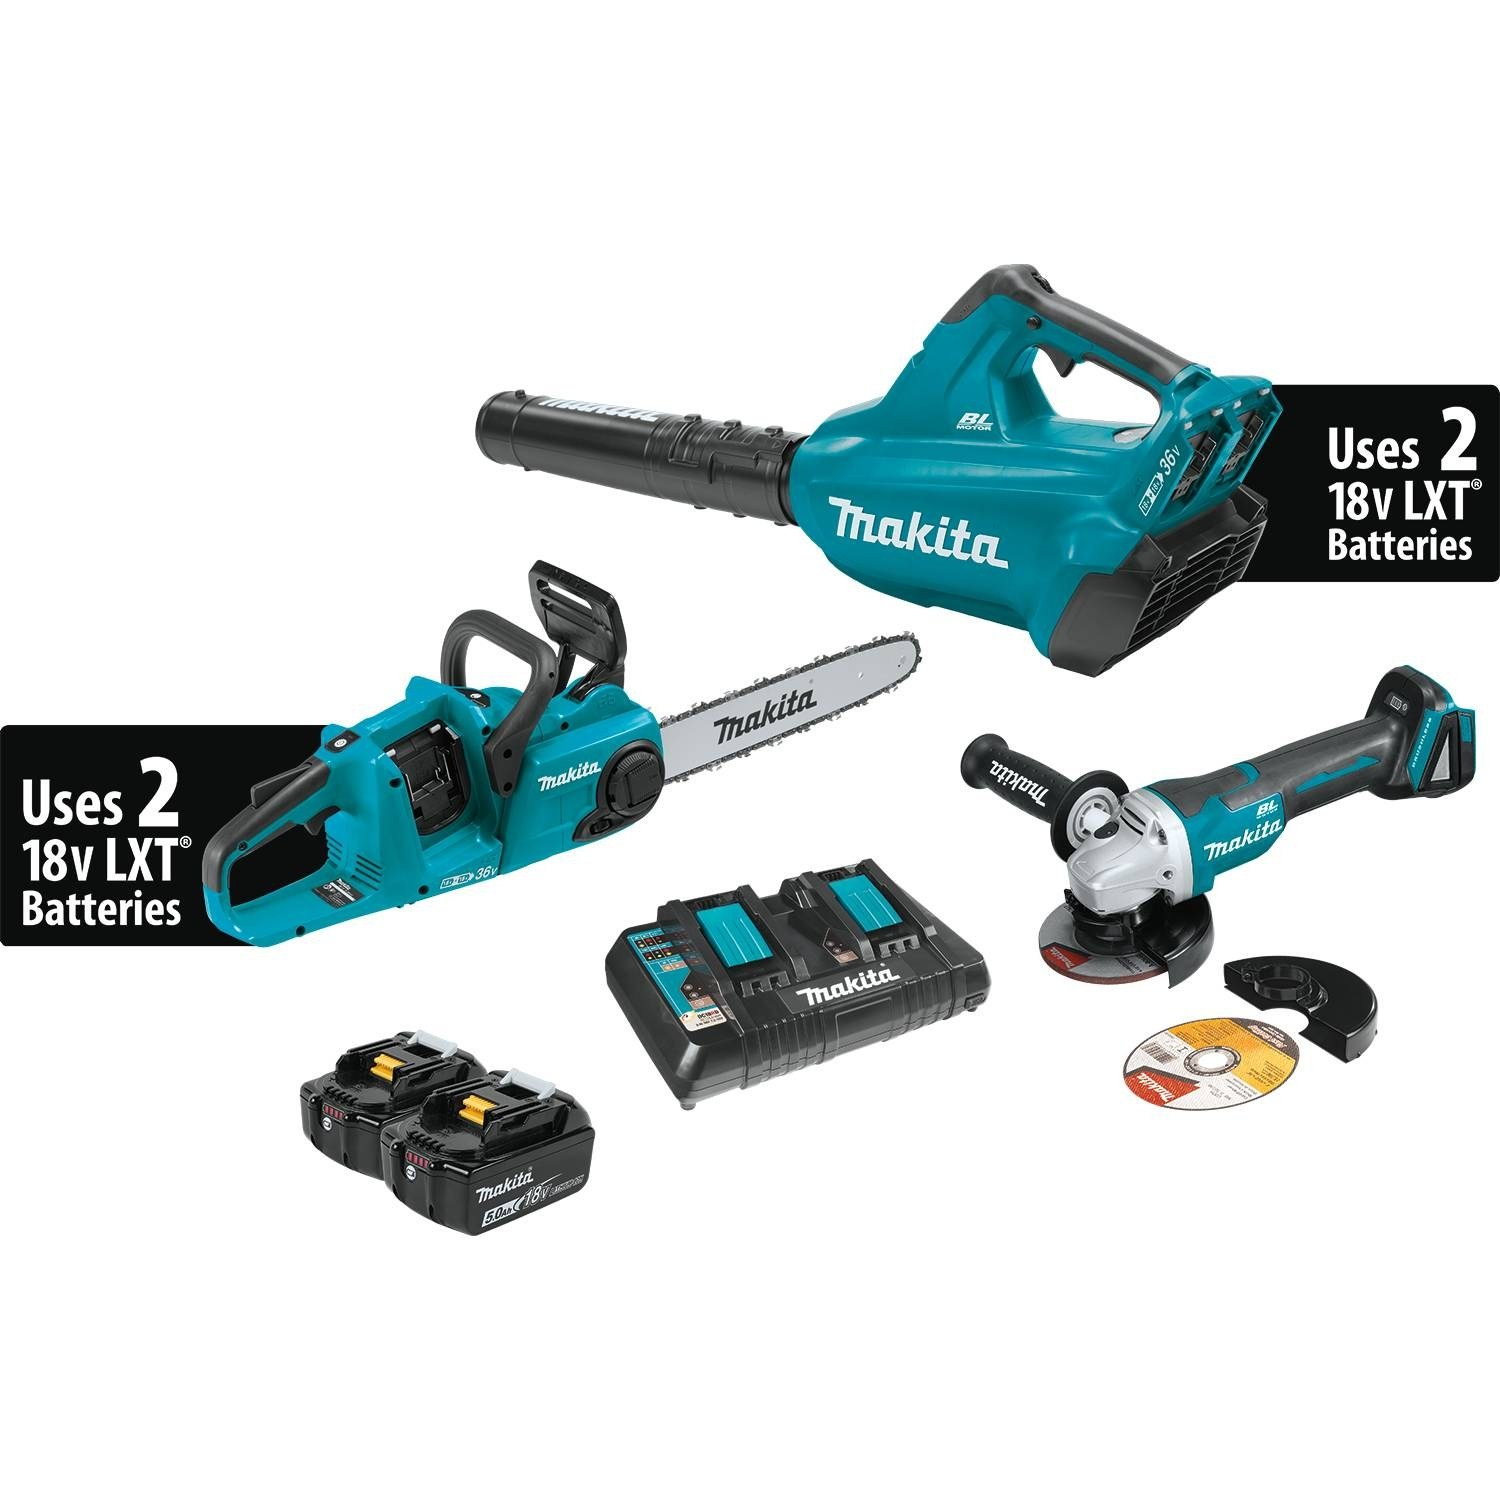 Makita Makita XT276PTX 18V X2 (36V) LXT Lithium-Ion Brushless 2-Pc. Combo Kit (5.0Ah) & Brushless Angle Grinder by Makita